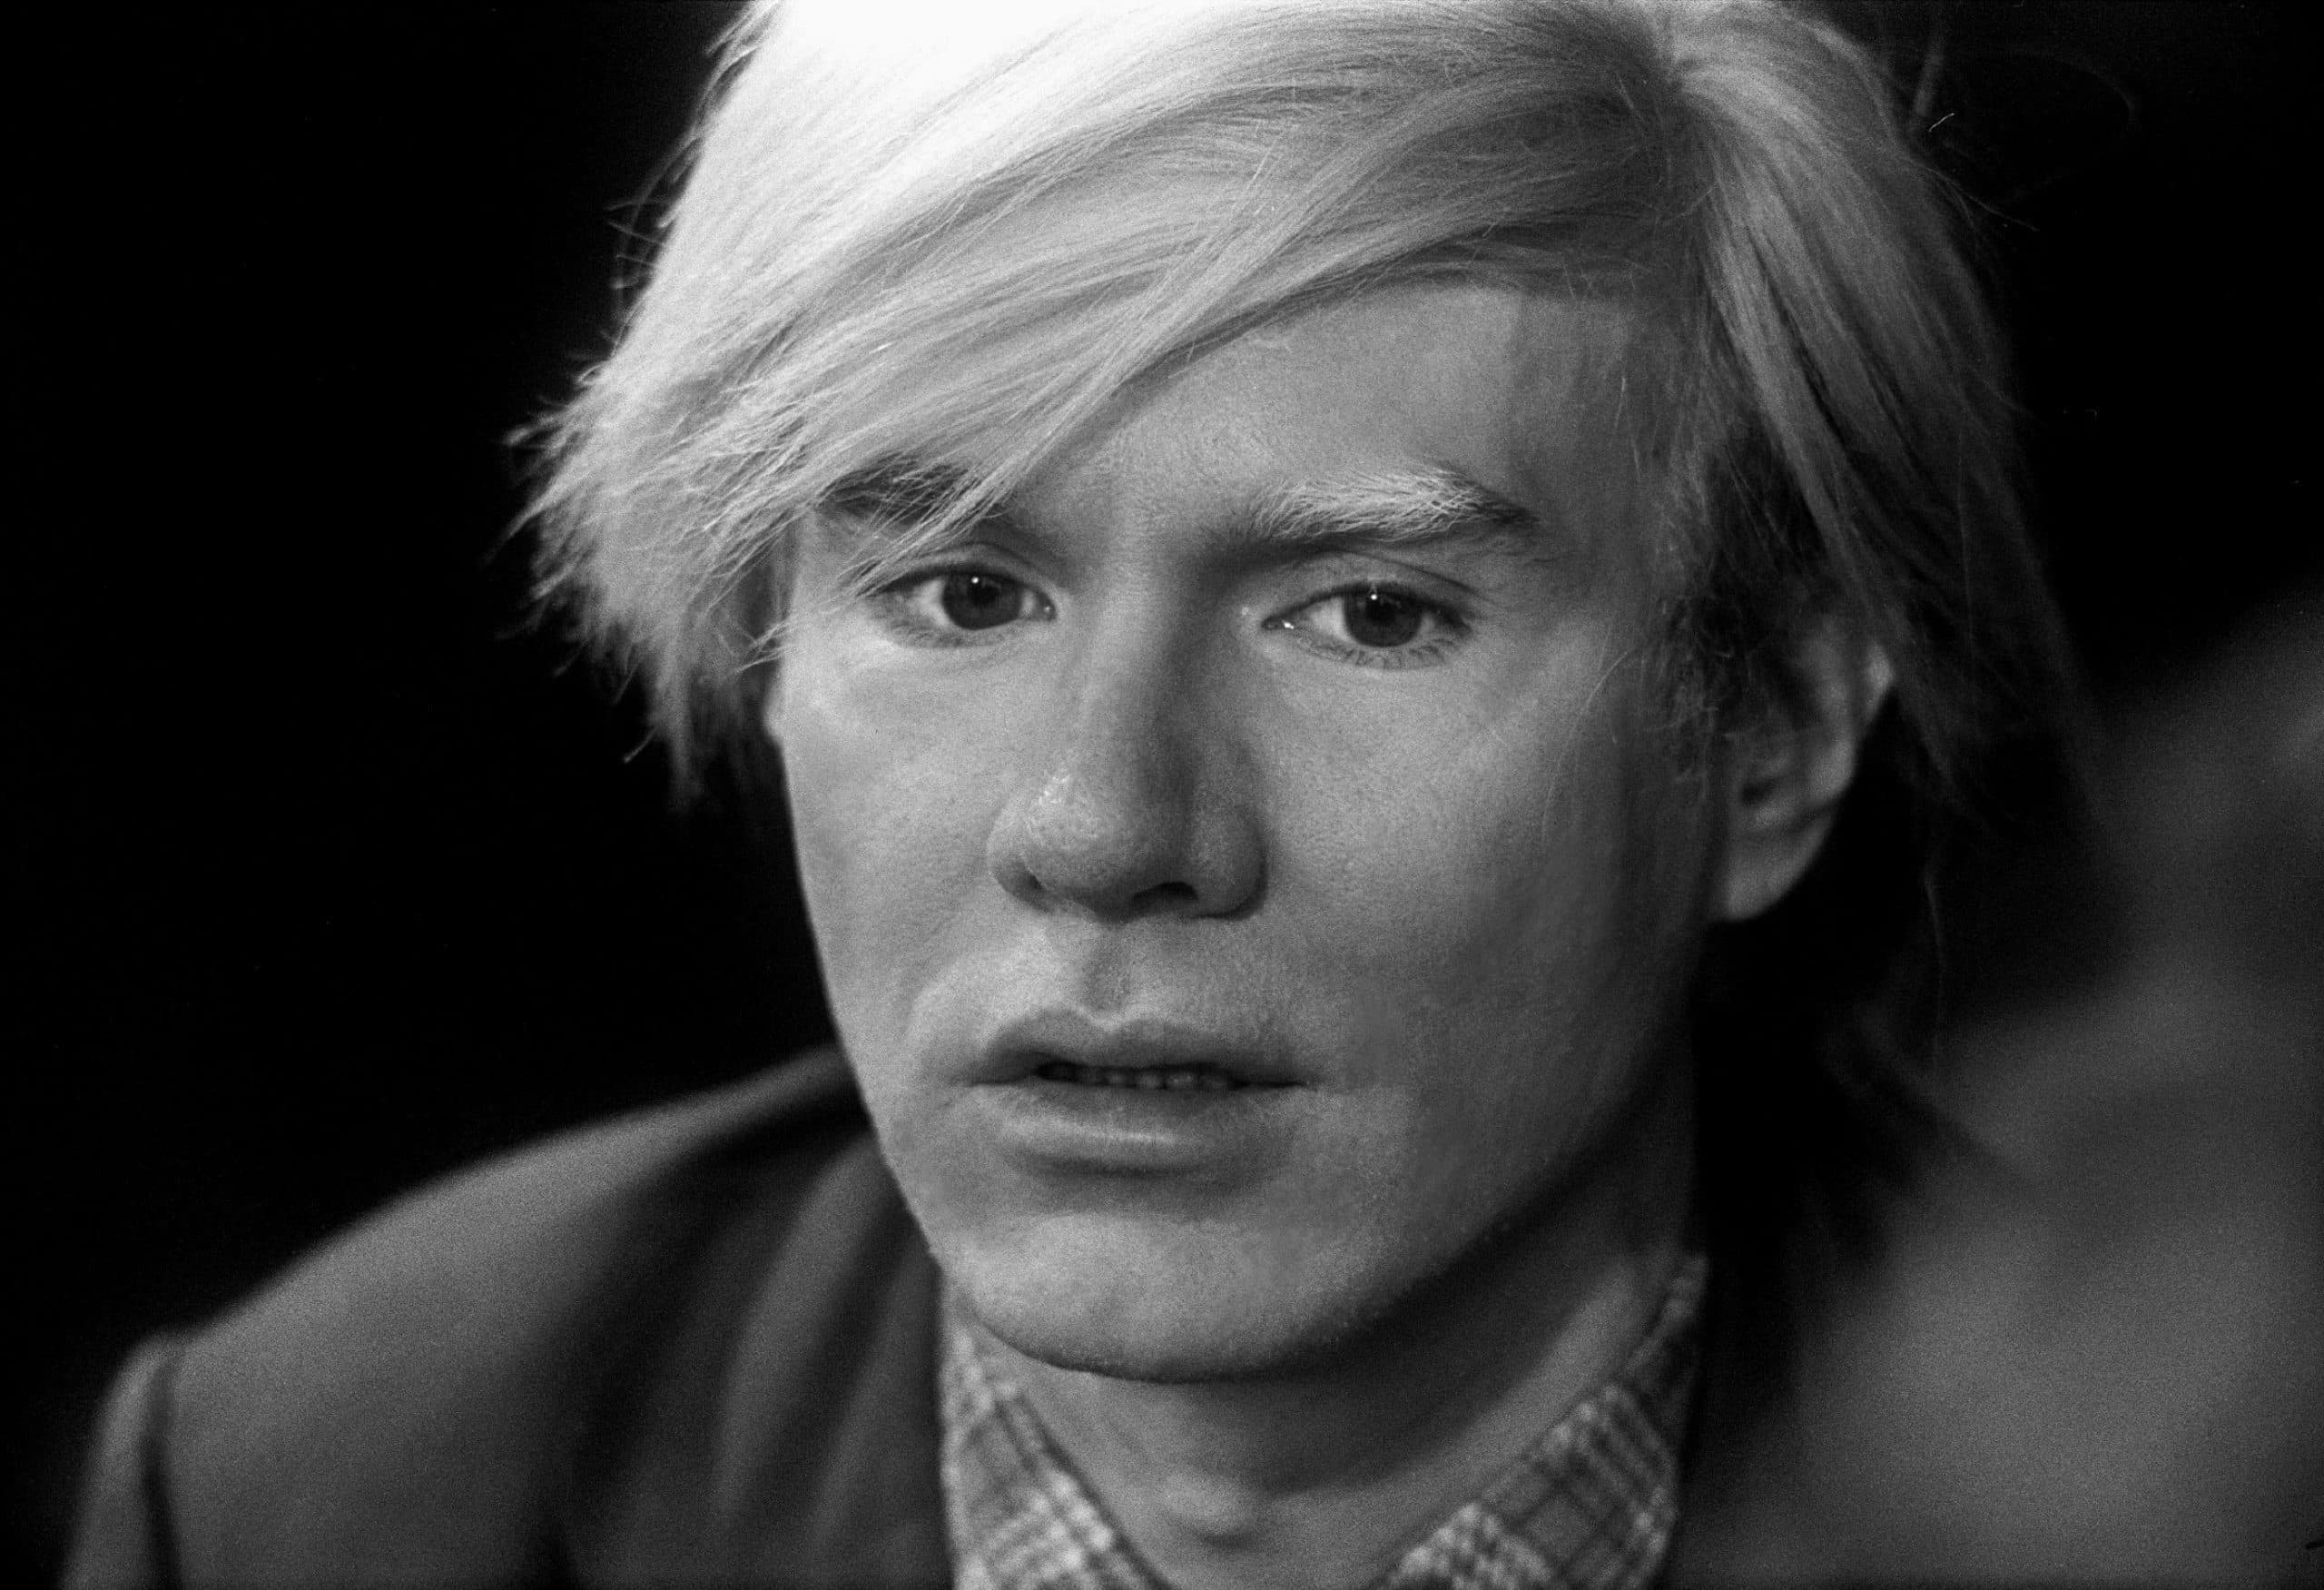 """Photograph of Andy Warhol, 1972. Featured in Andy Warhol's """"The Philosophy of Andy Warhol"""" in the Examined Life Library."""